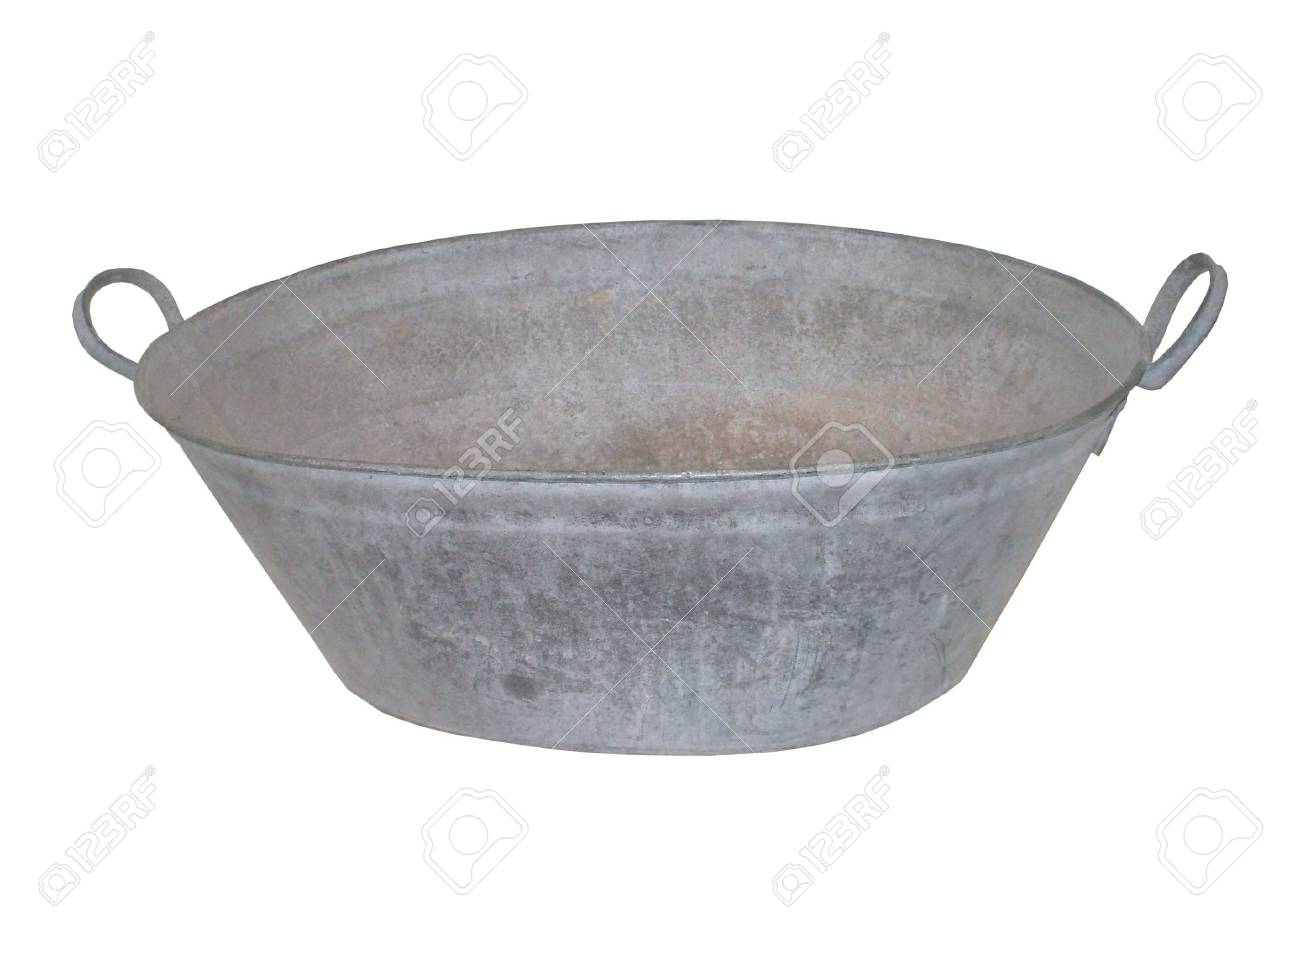 An Antique Metal Galvanised Tin Bath Tub. Stock Photo, Picture And ...